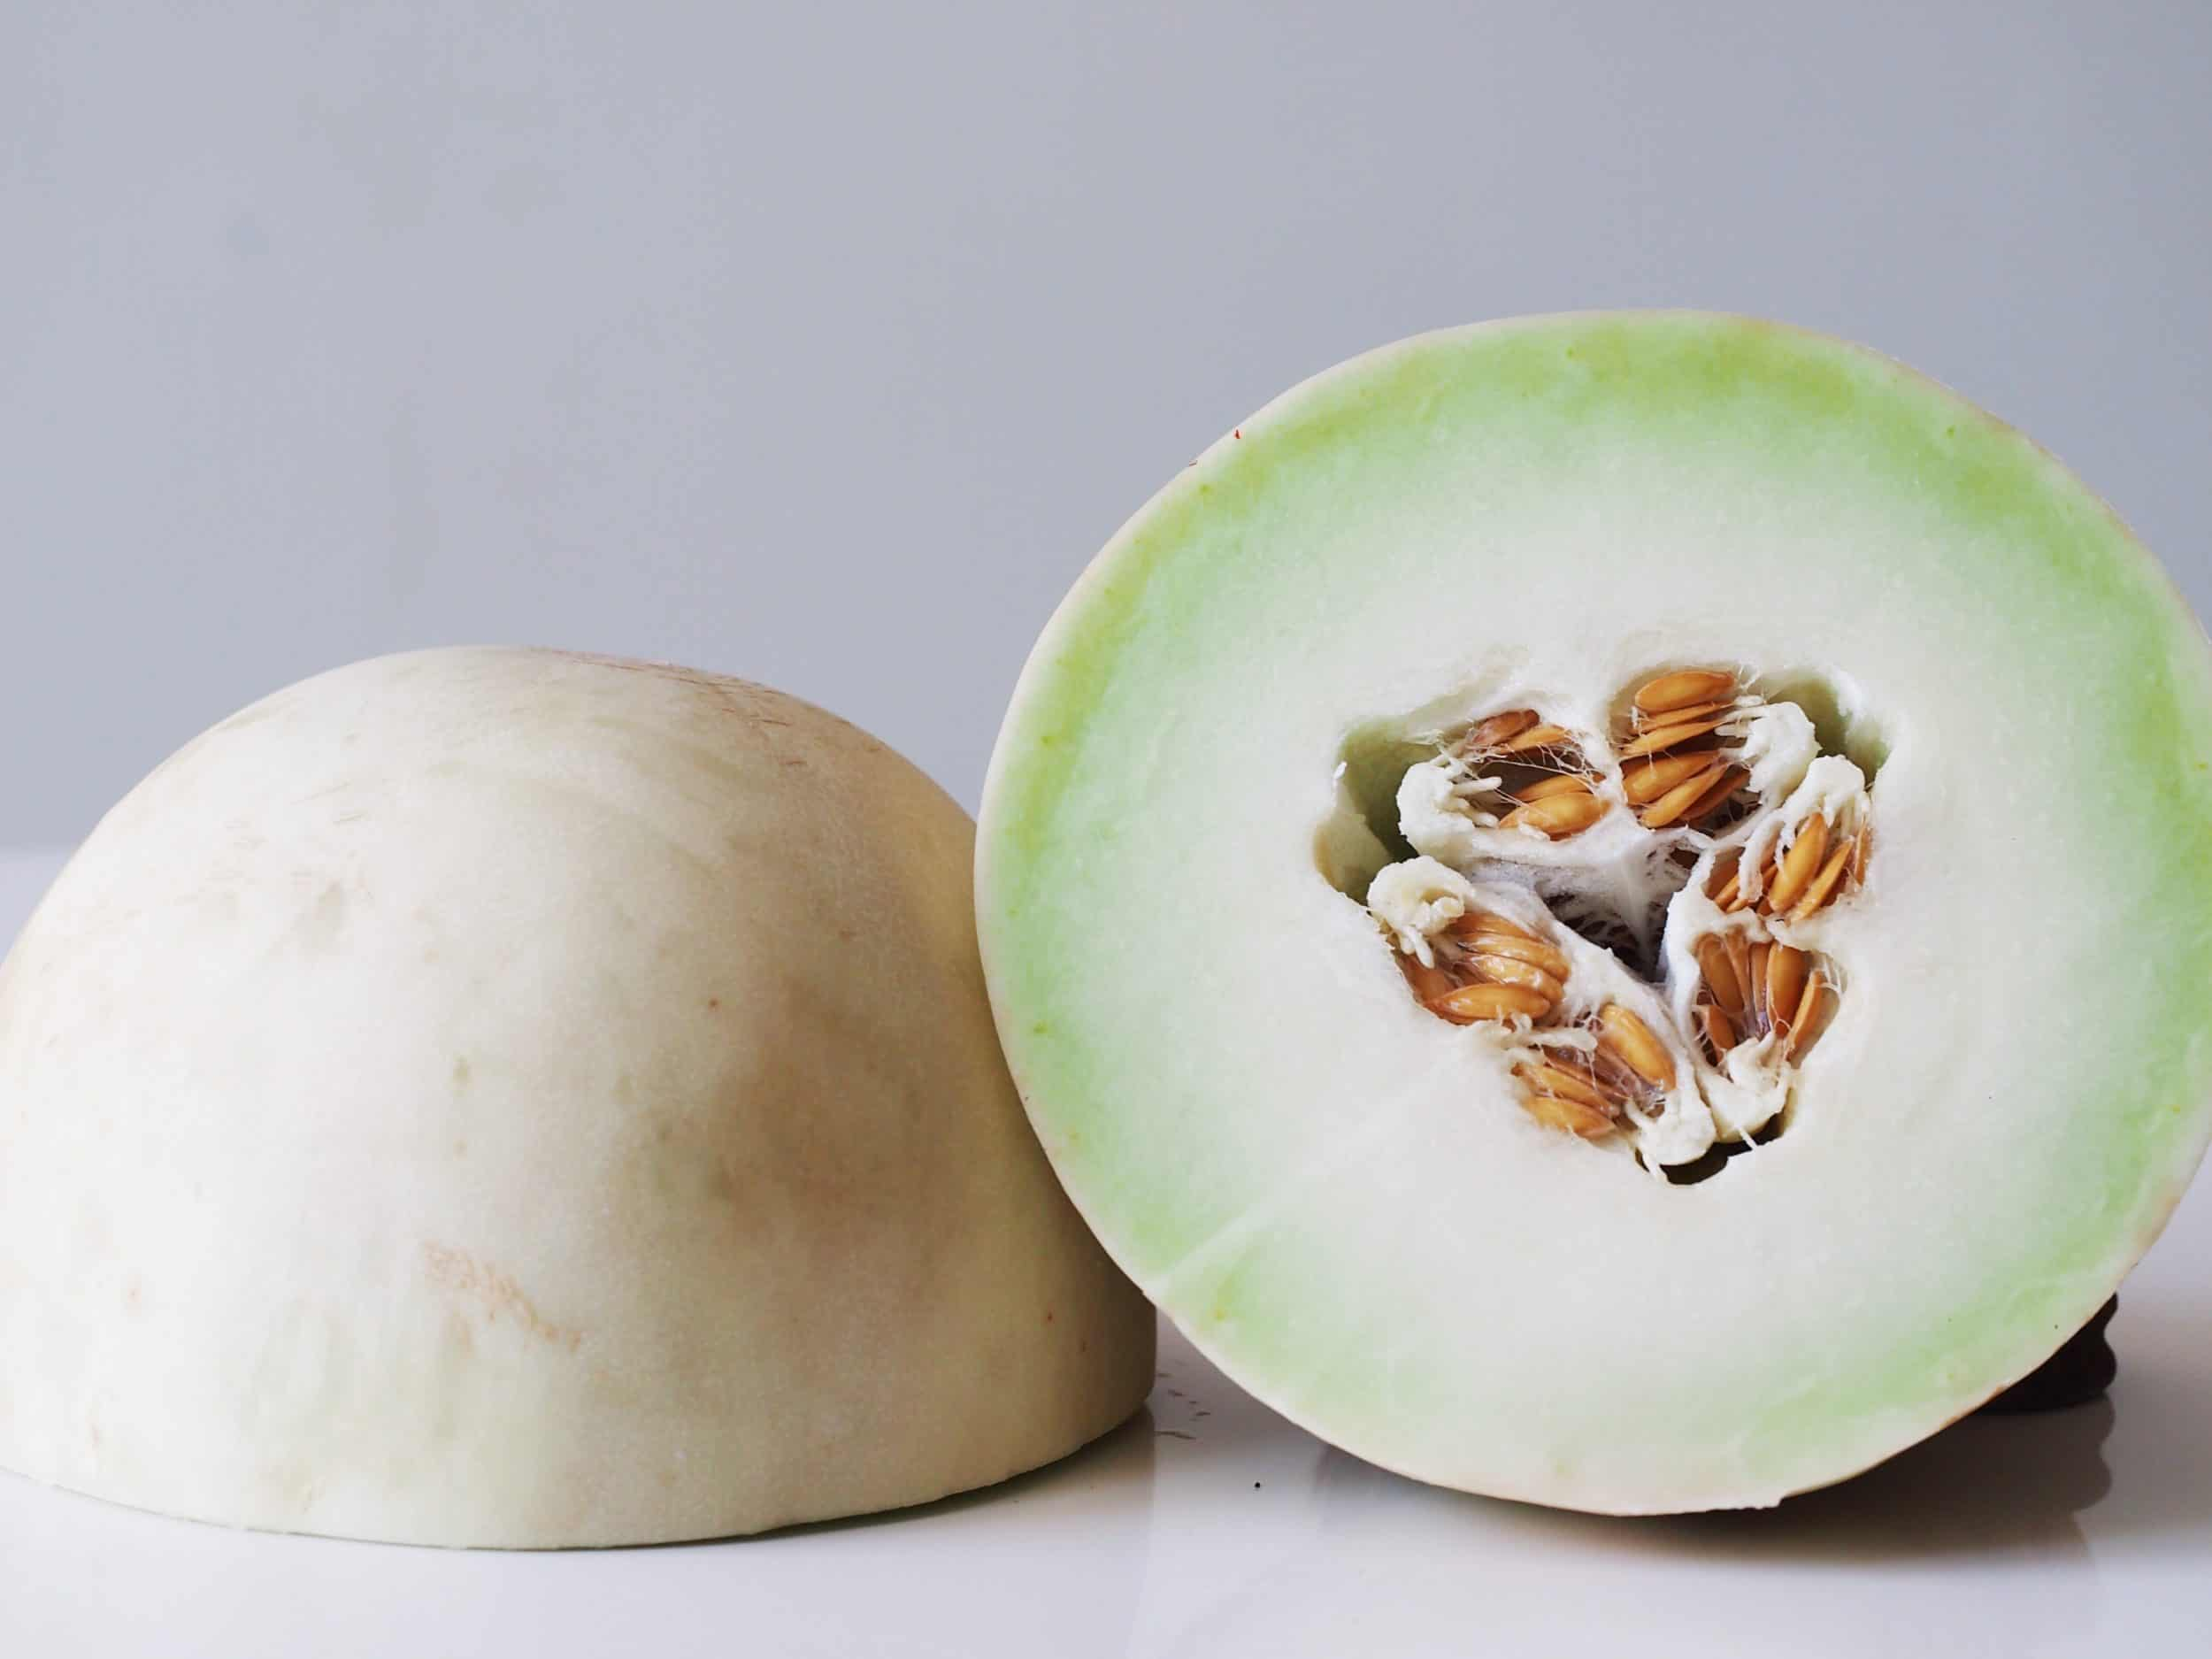 Honeydew Melon First Foods For Baby Solid Starts I design with cycling in mind, offering a chic alternative to the spandex clad superhero cycling suits. solid starts